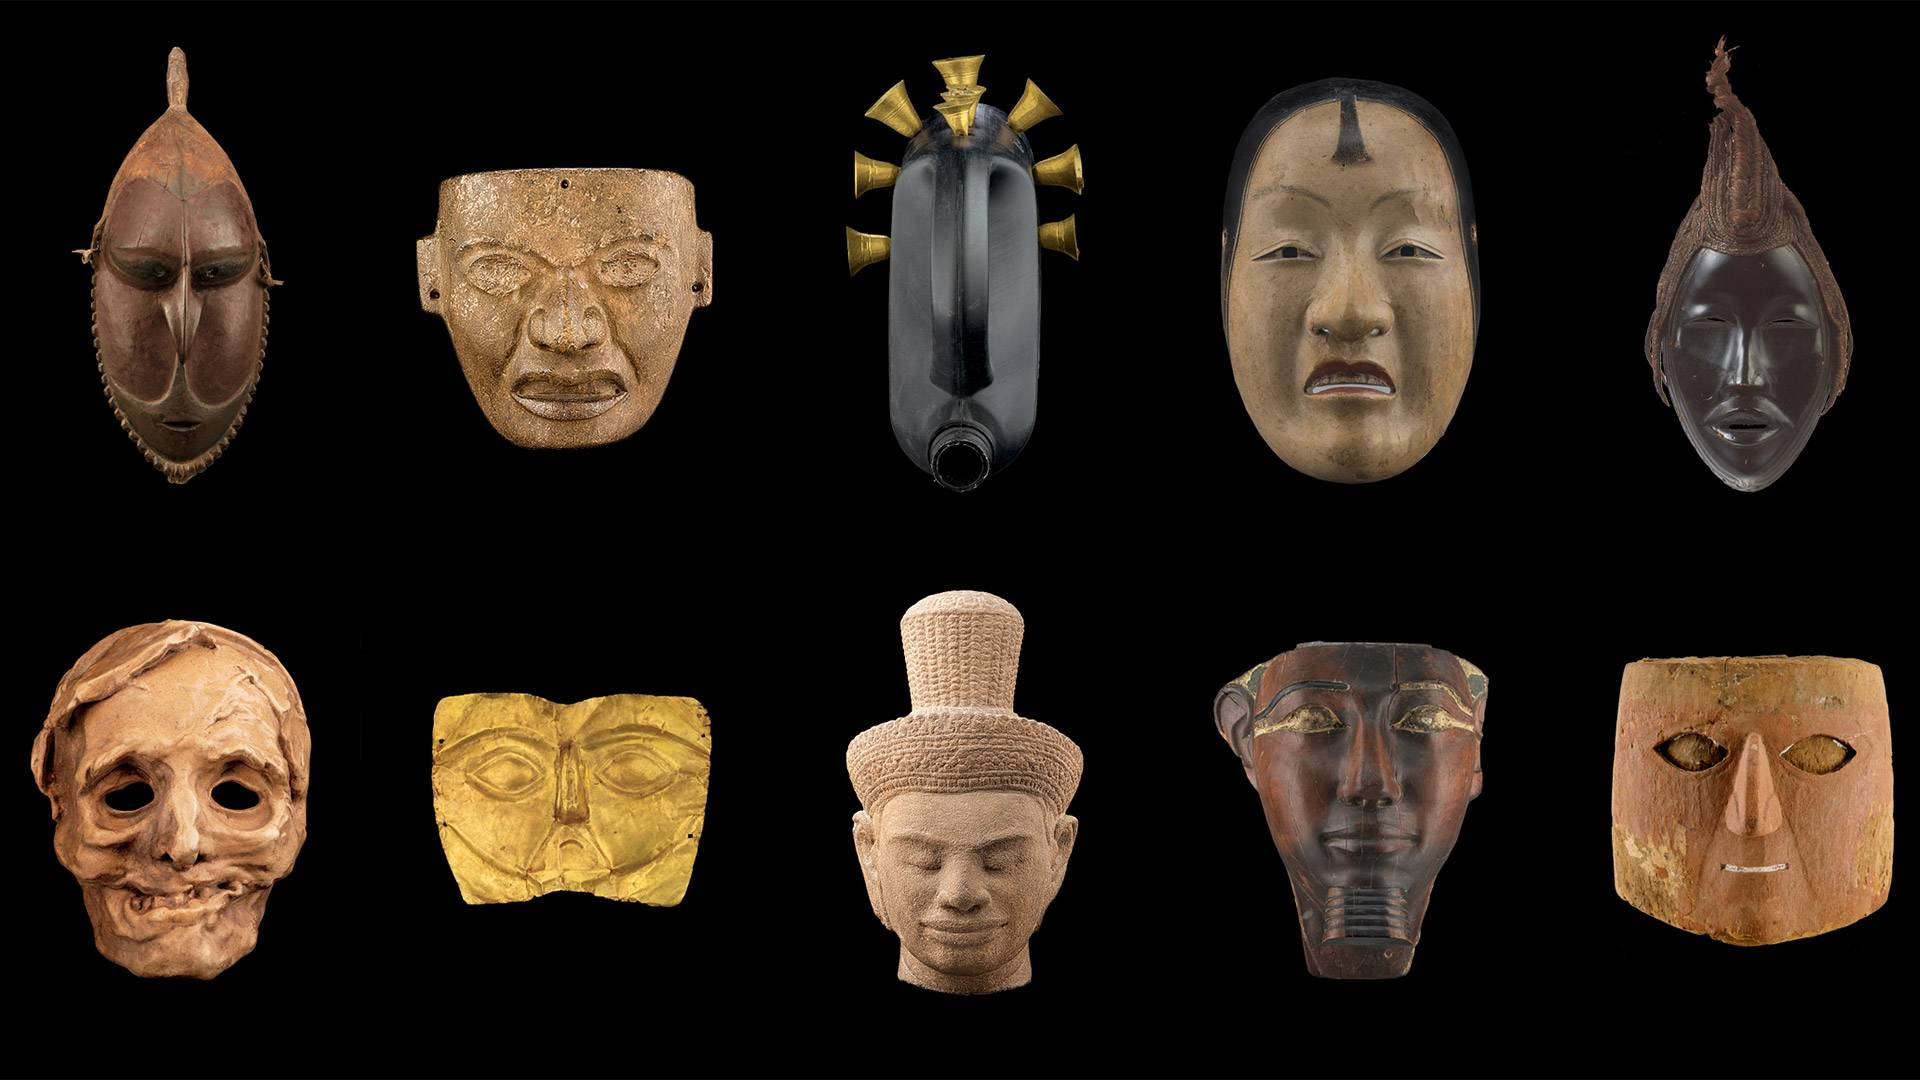 masks from The Arts of One World Collection at the Montreal Museum of Fine Arts